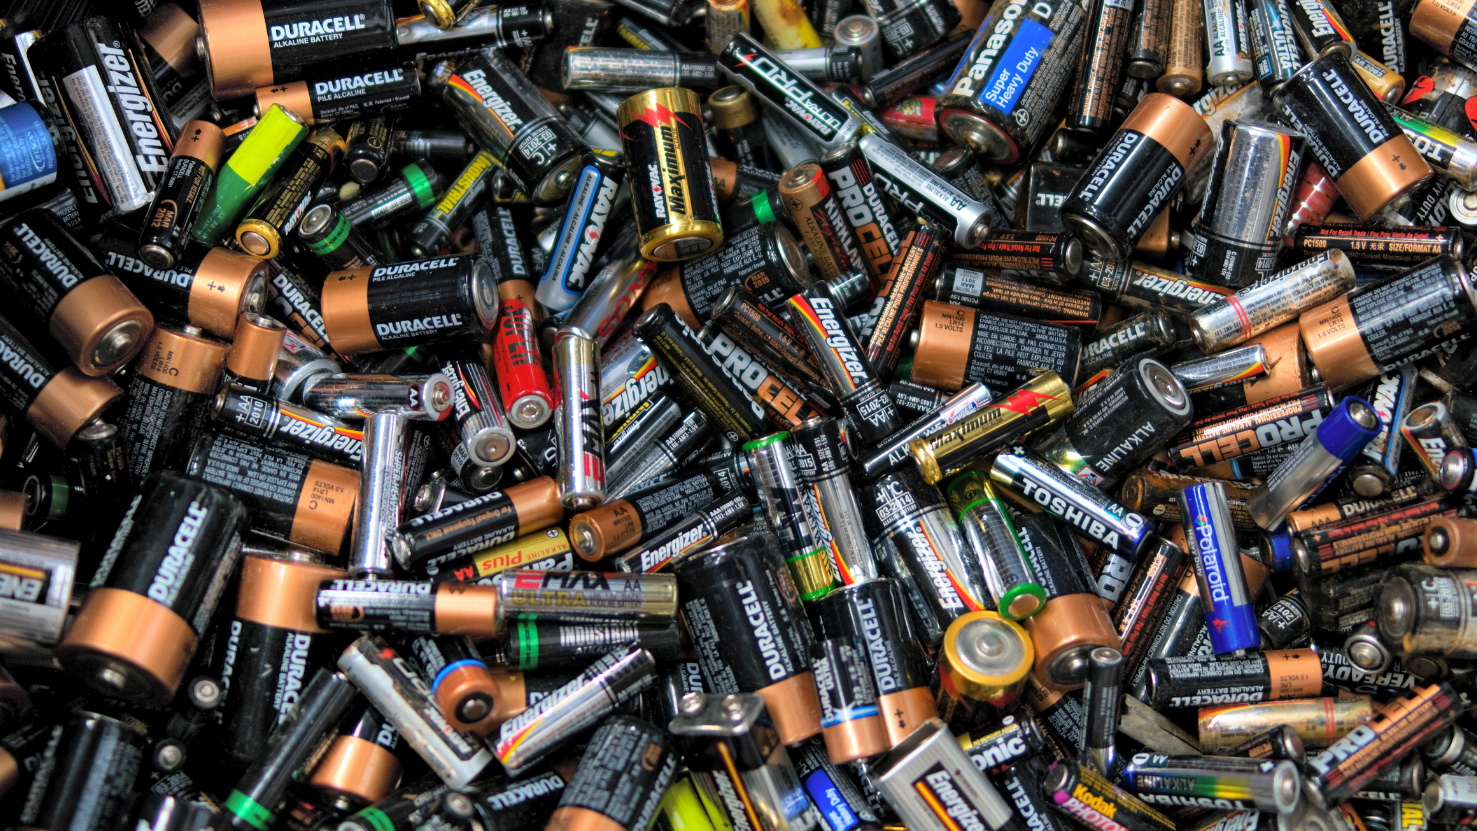 Scrap Metal furthermore 91416 Scrap Price Update Copper Jumping Slightly likewise Future Metals Recycling 13958140 Listing furthermore Scrap Radiator Price as well Batteries. on lead batteries scrap prices